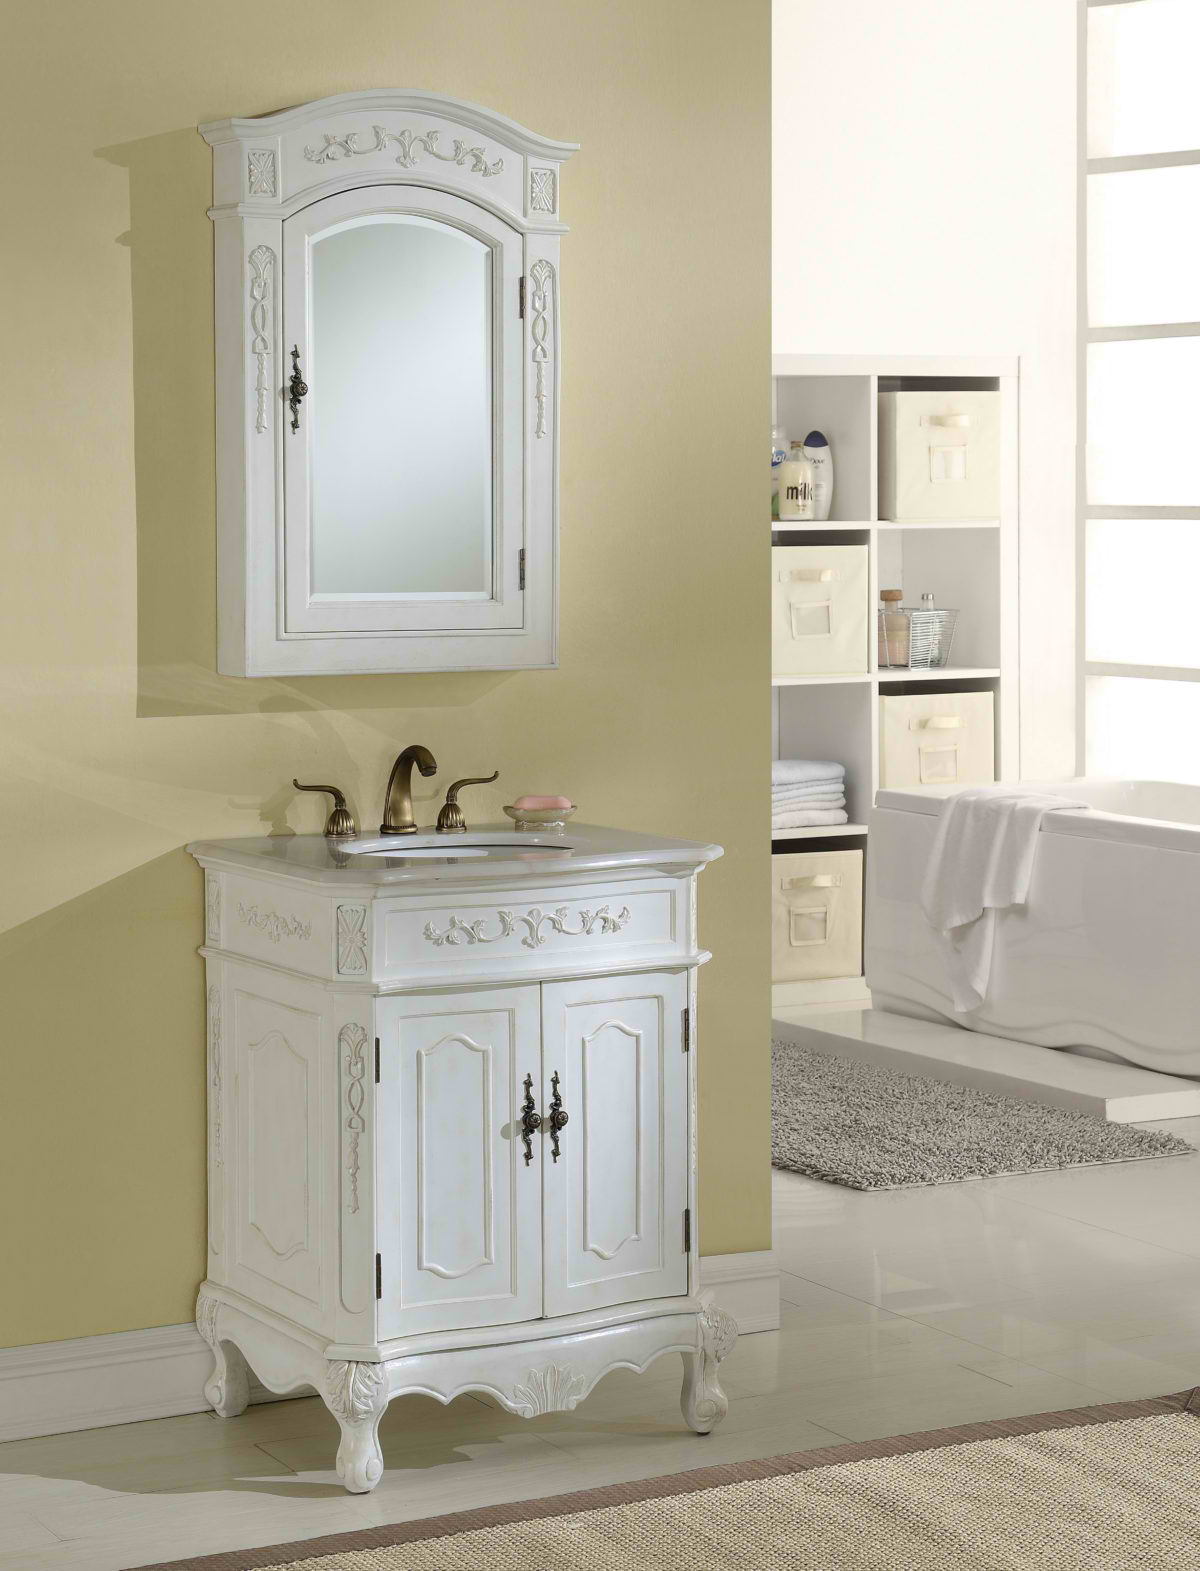 """27"""" Antique White Finish Vanity with Mirror, Med Cab, and Linen Cabinet Options"""